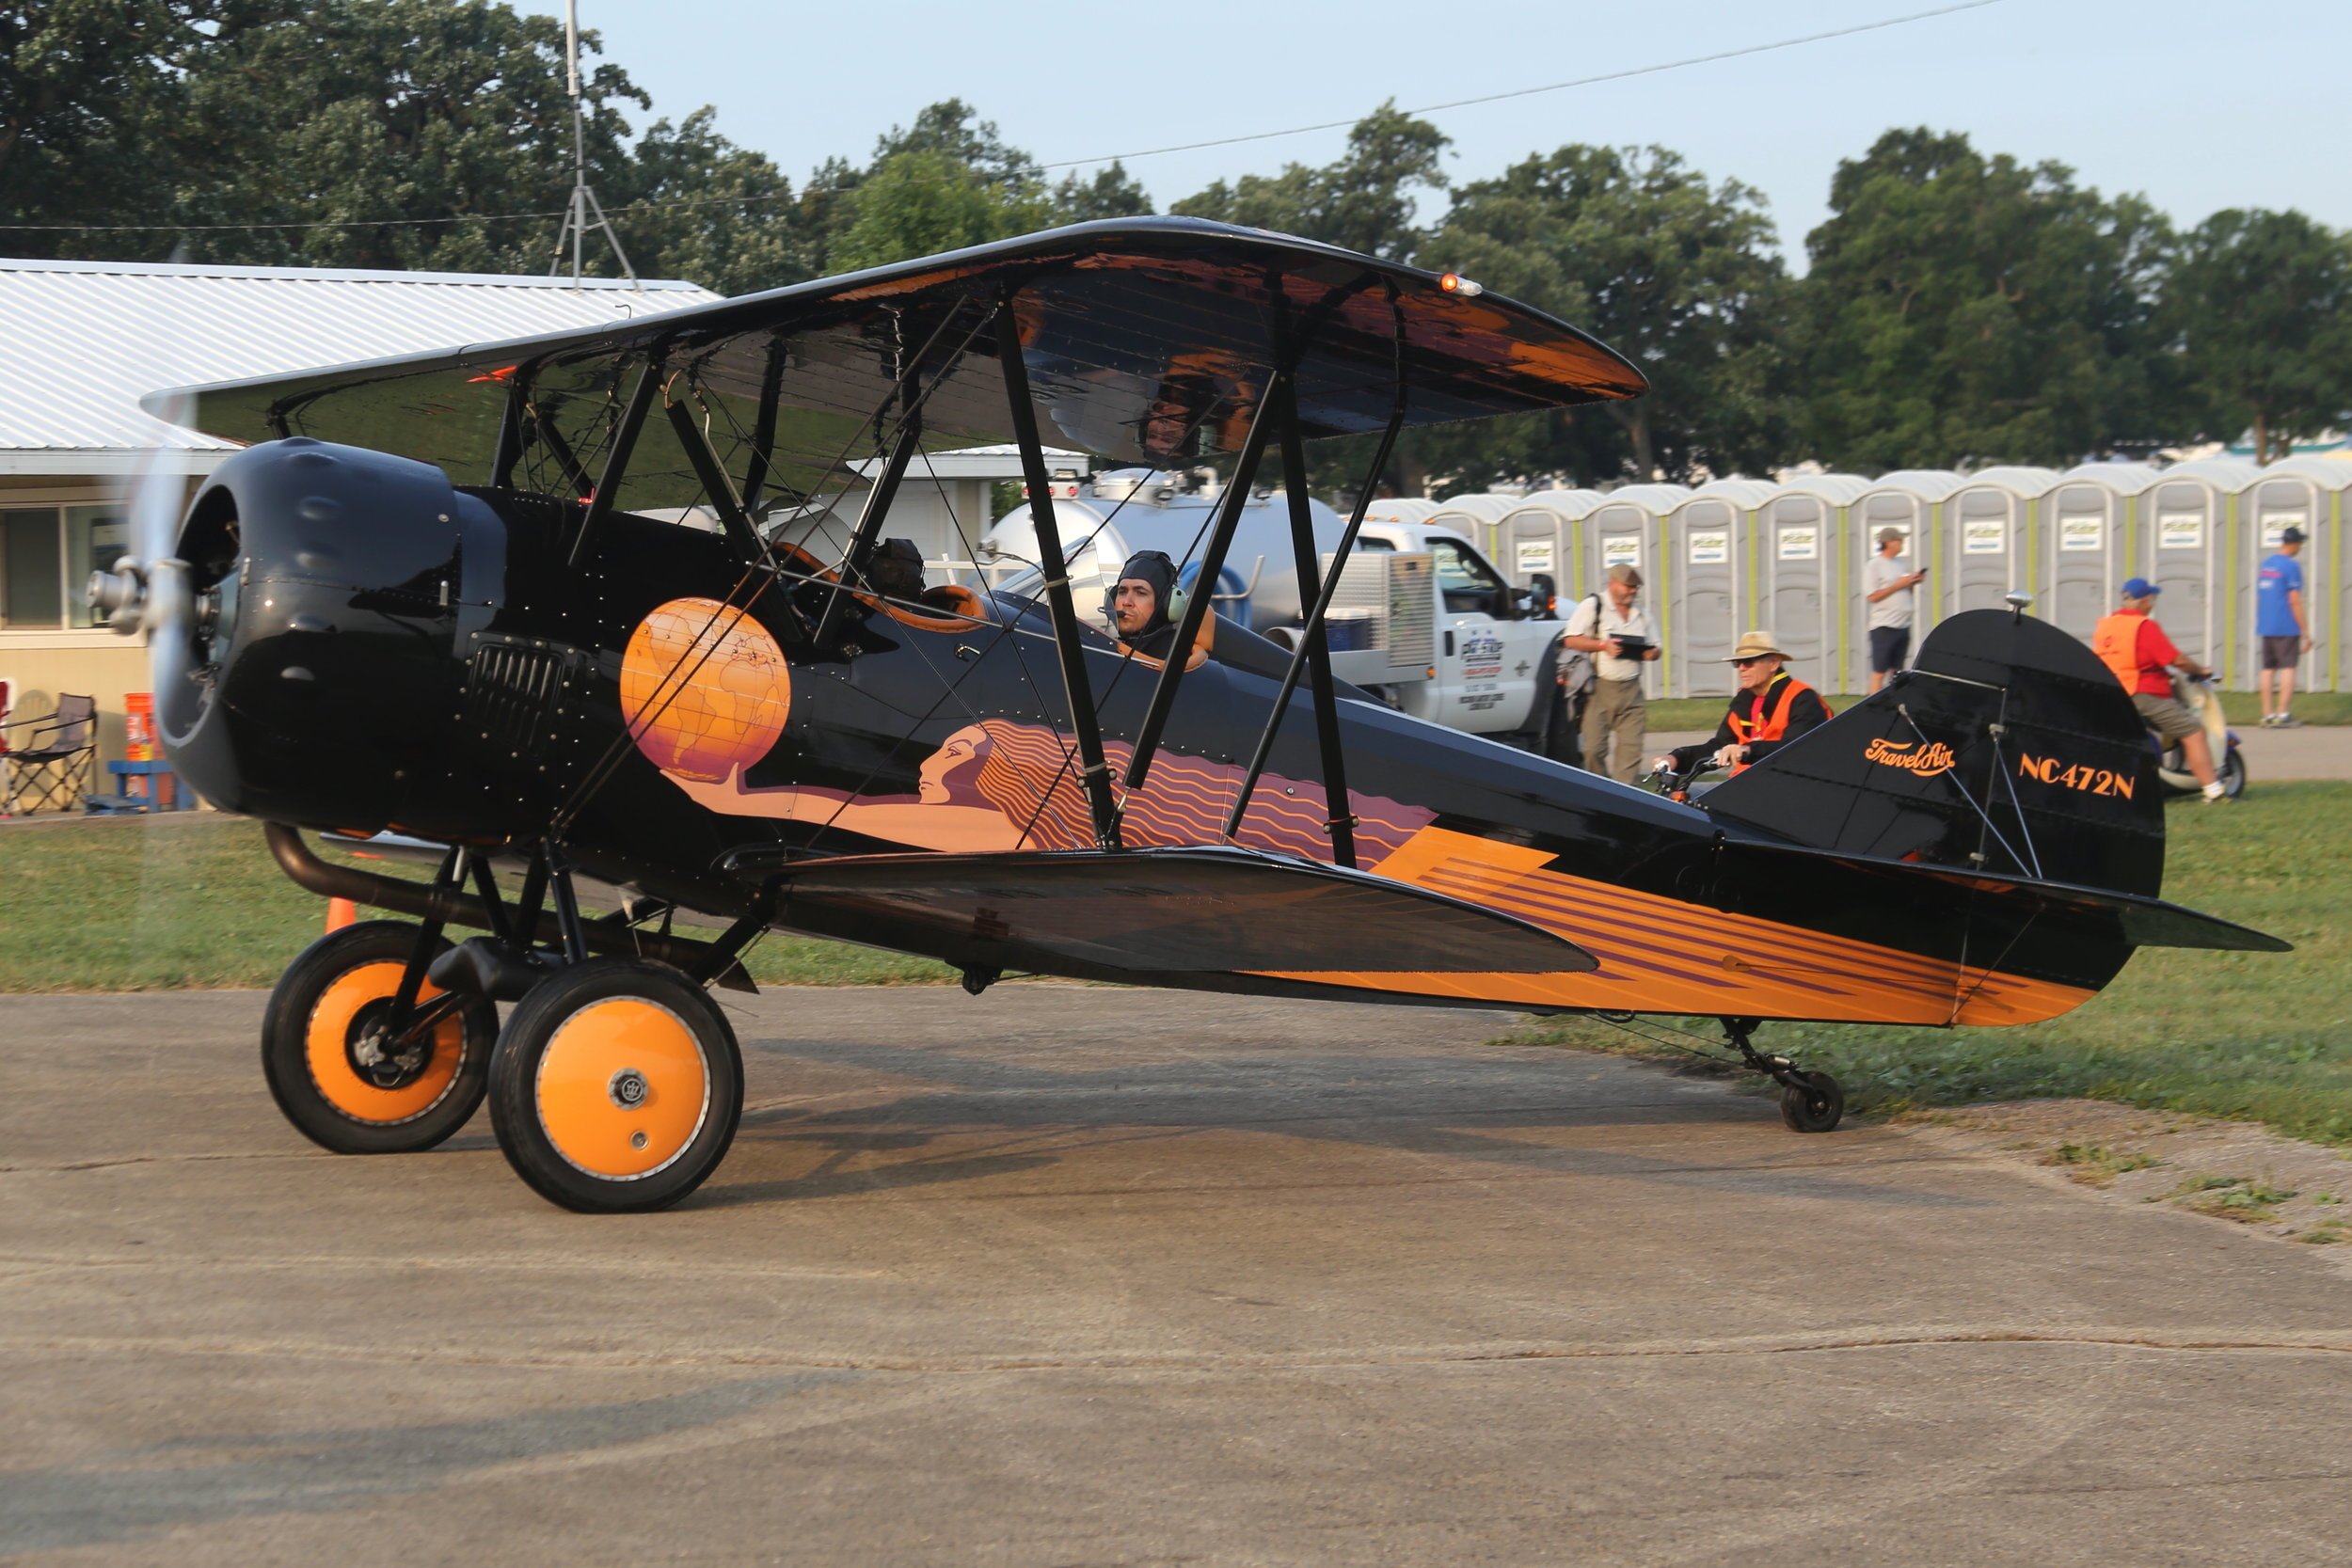 NC472N Travel Air D-4-D (manufactured in 1929) taken at Oshkosh 23rd July 2018 by John Wood